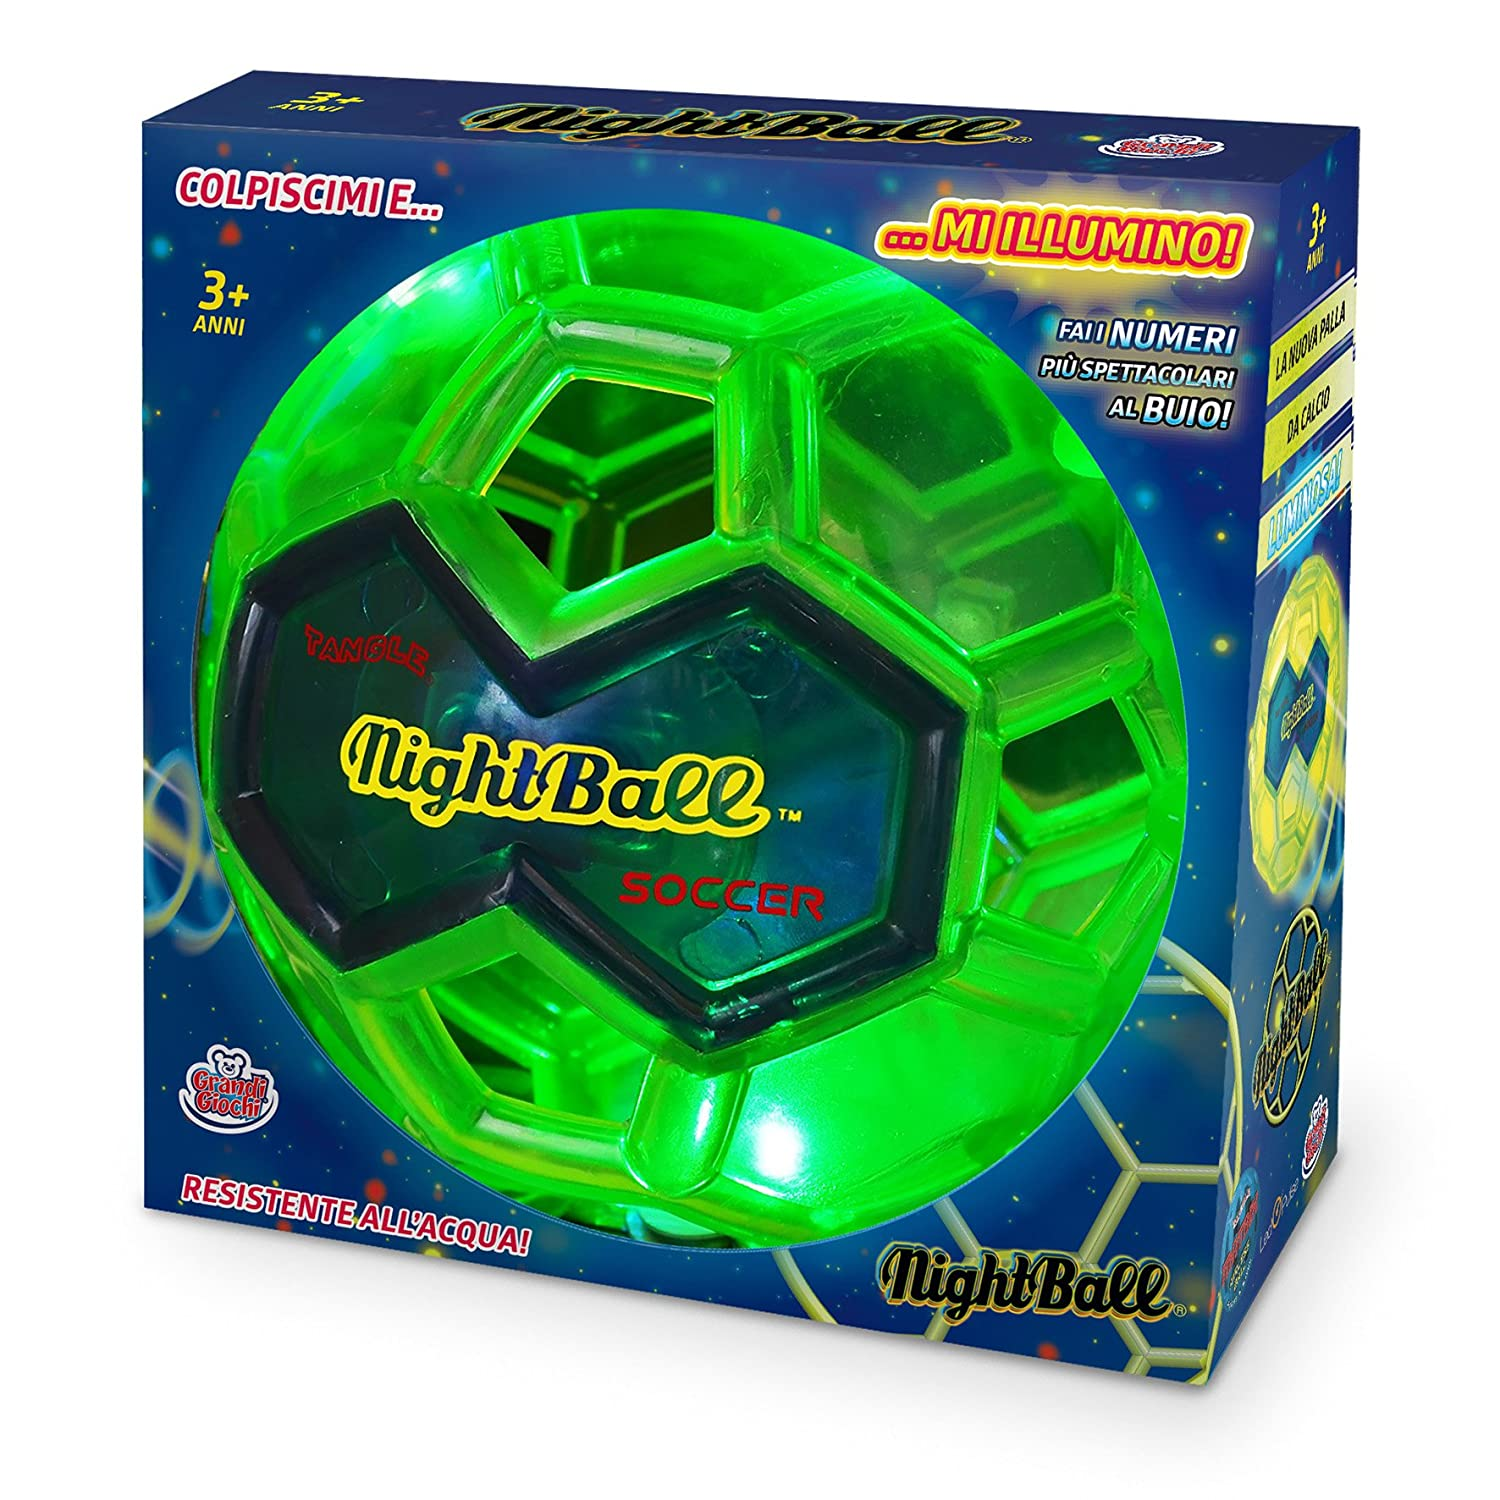 [amazon] Pubblicità di Cartoonito e Rai YoYo: Grandi Giochi GG00230 - Night Ball, Verde Lime per 13,20€